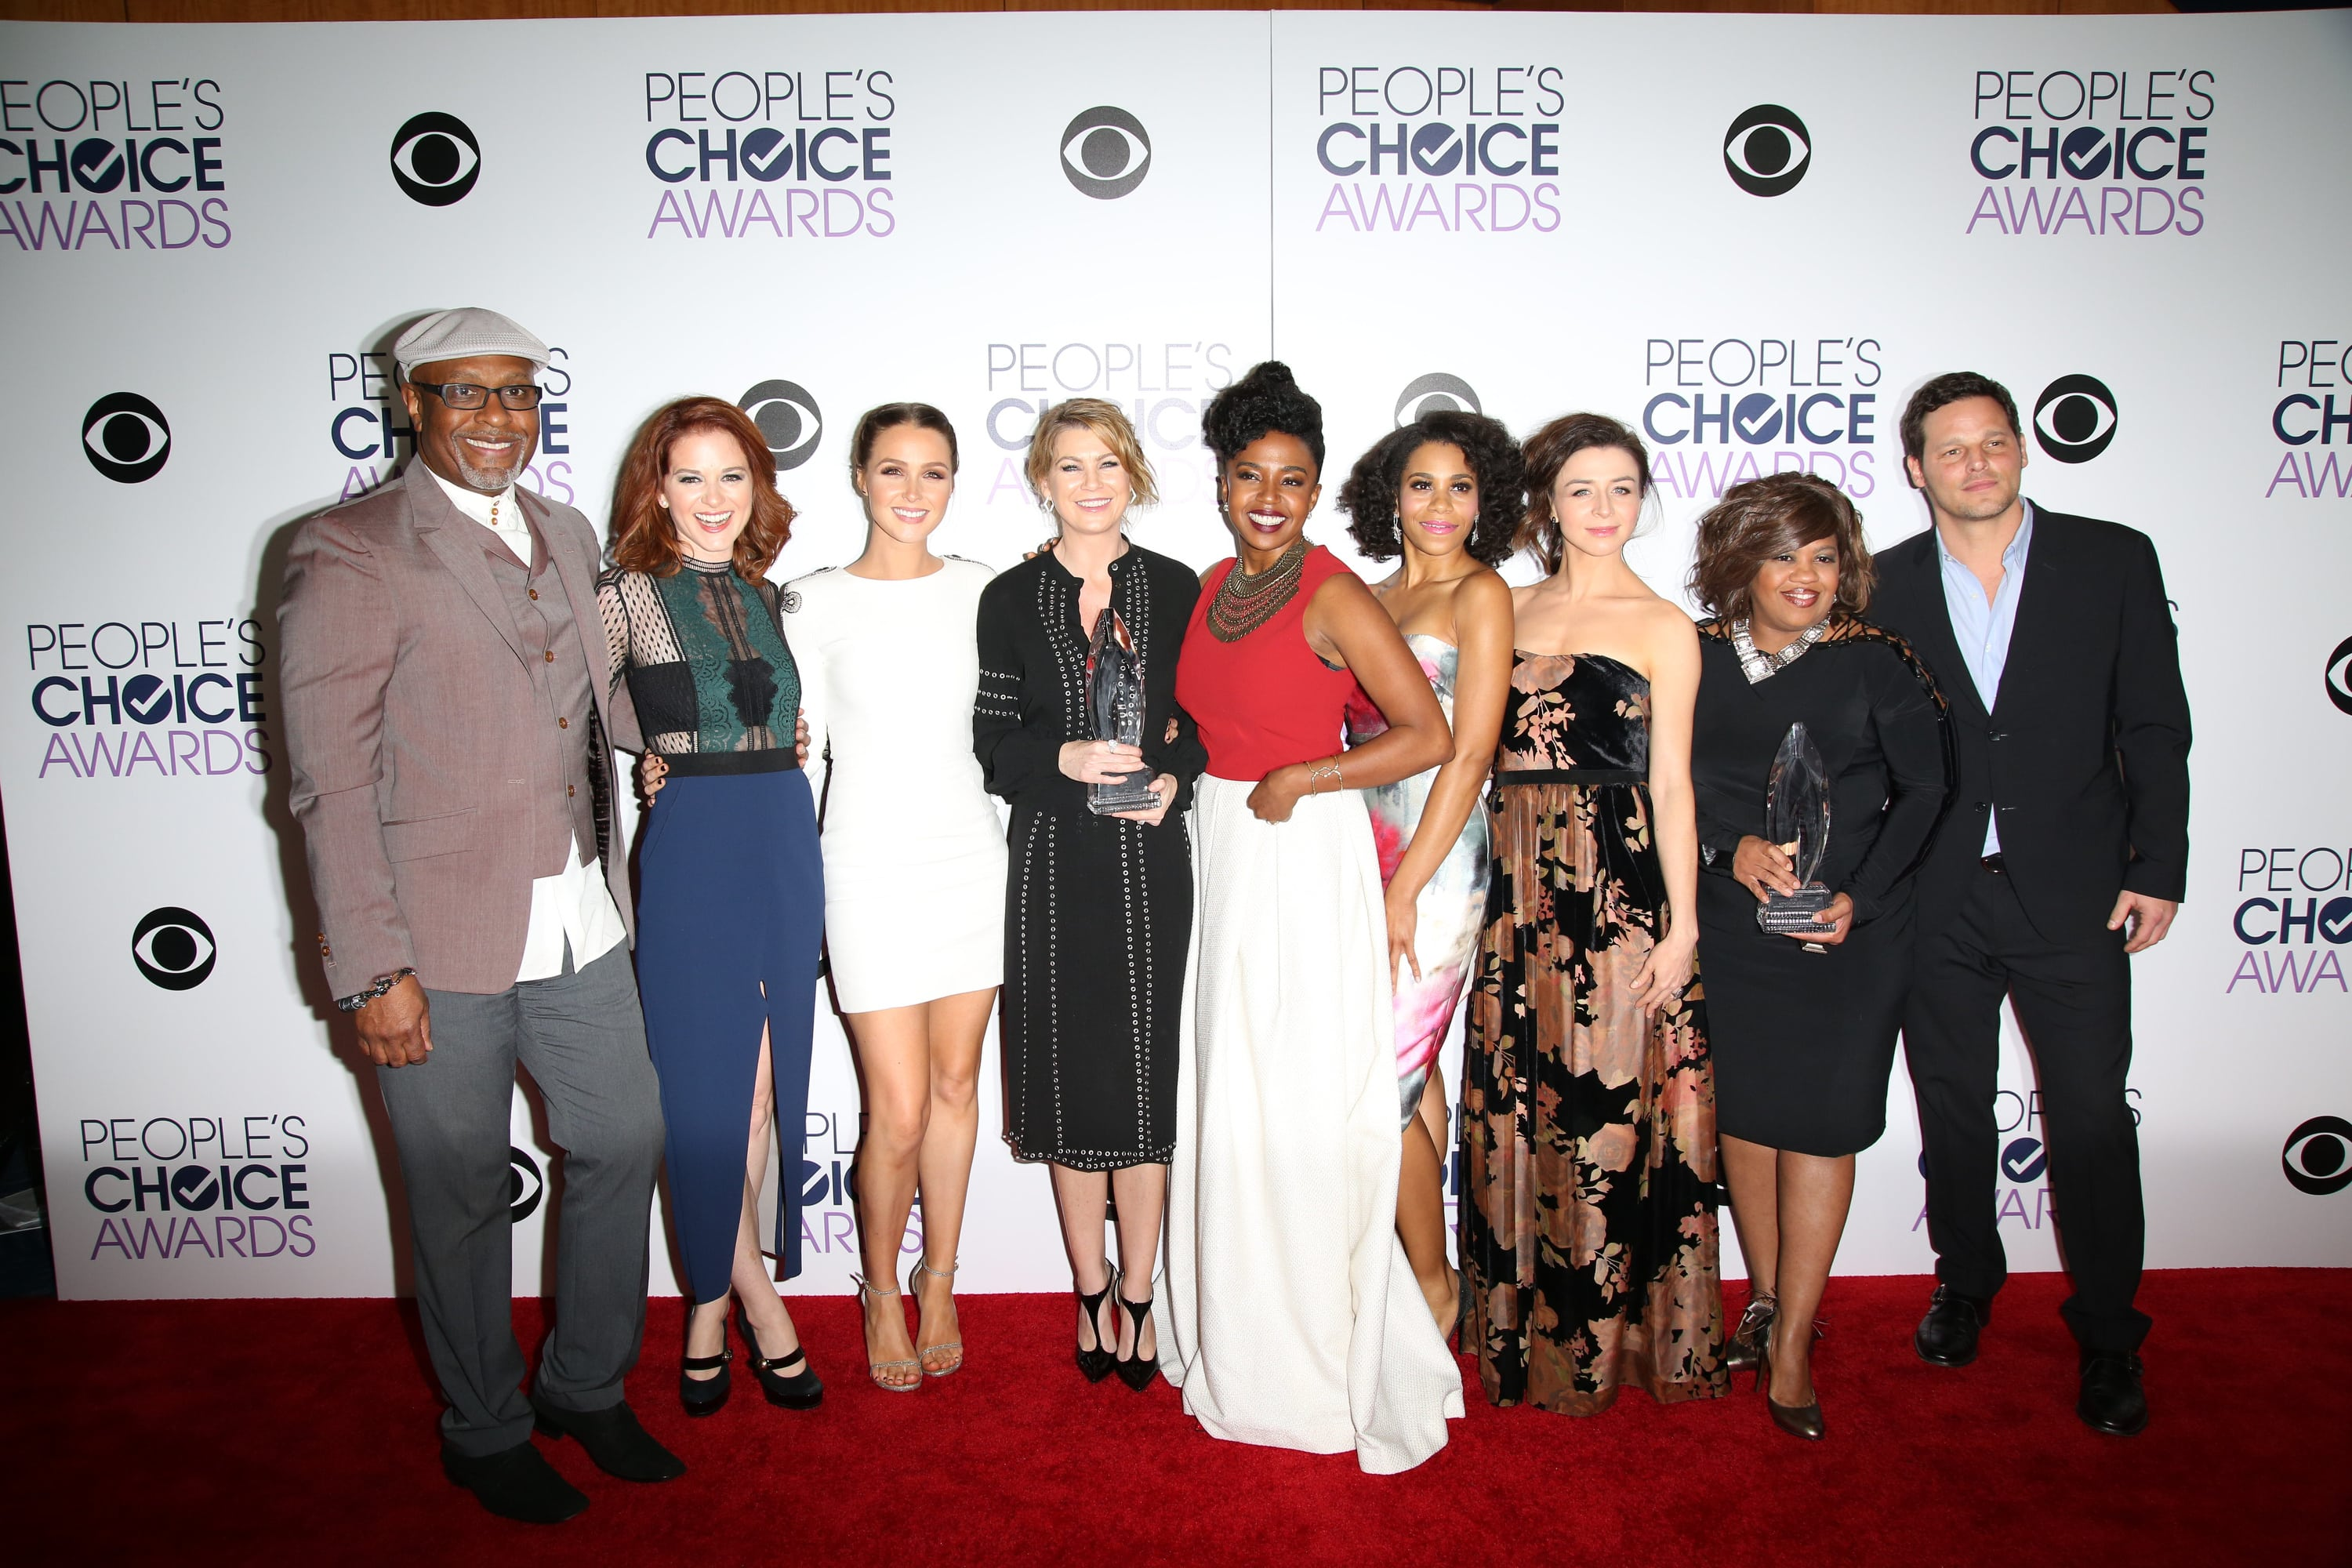 Greys Anatomy Cast 2016 Peoples Choice Awards The Hollywood Gossip